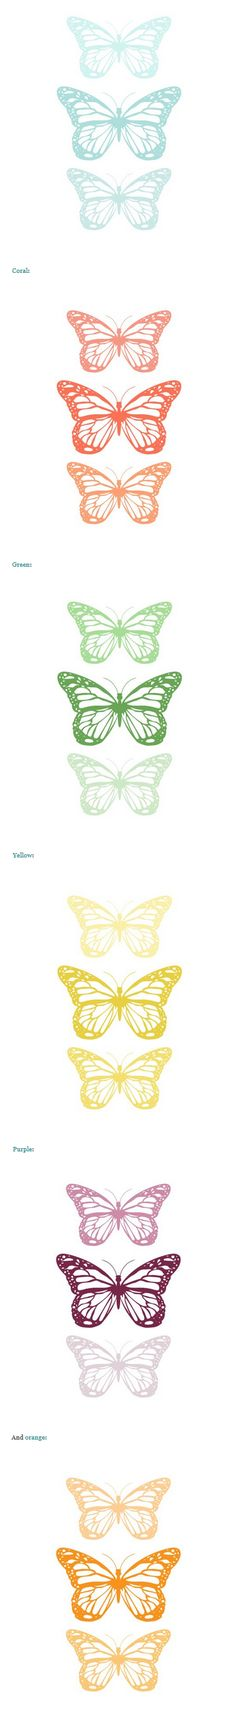 Free printable butterflies from Our Humble Abode